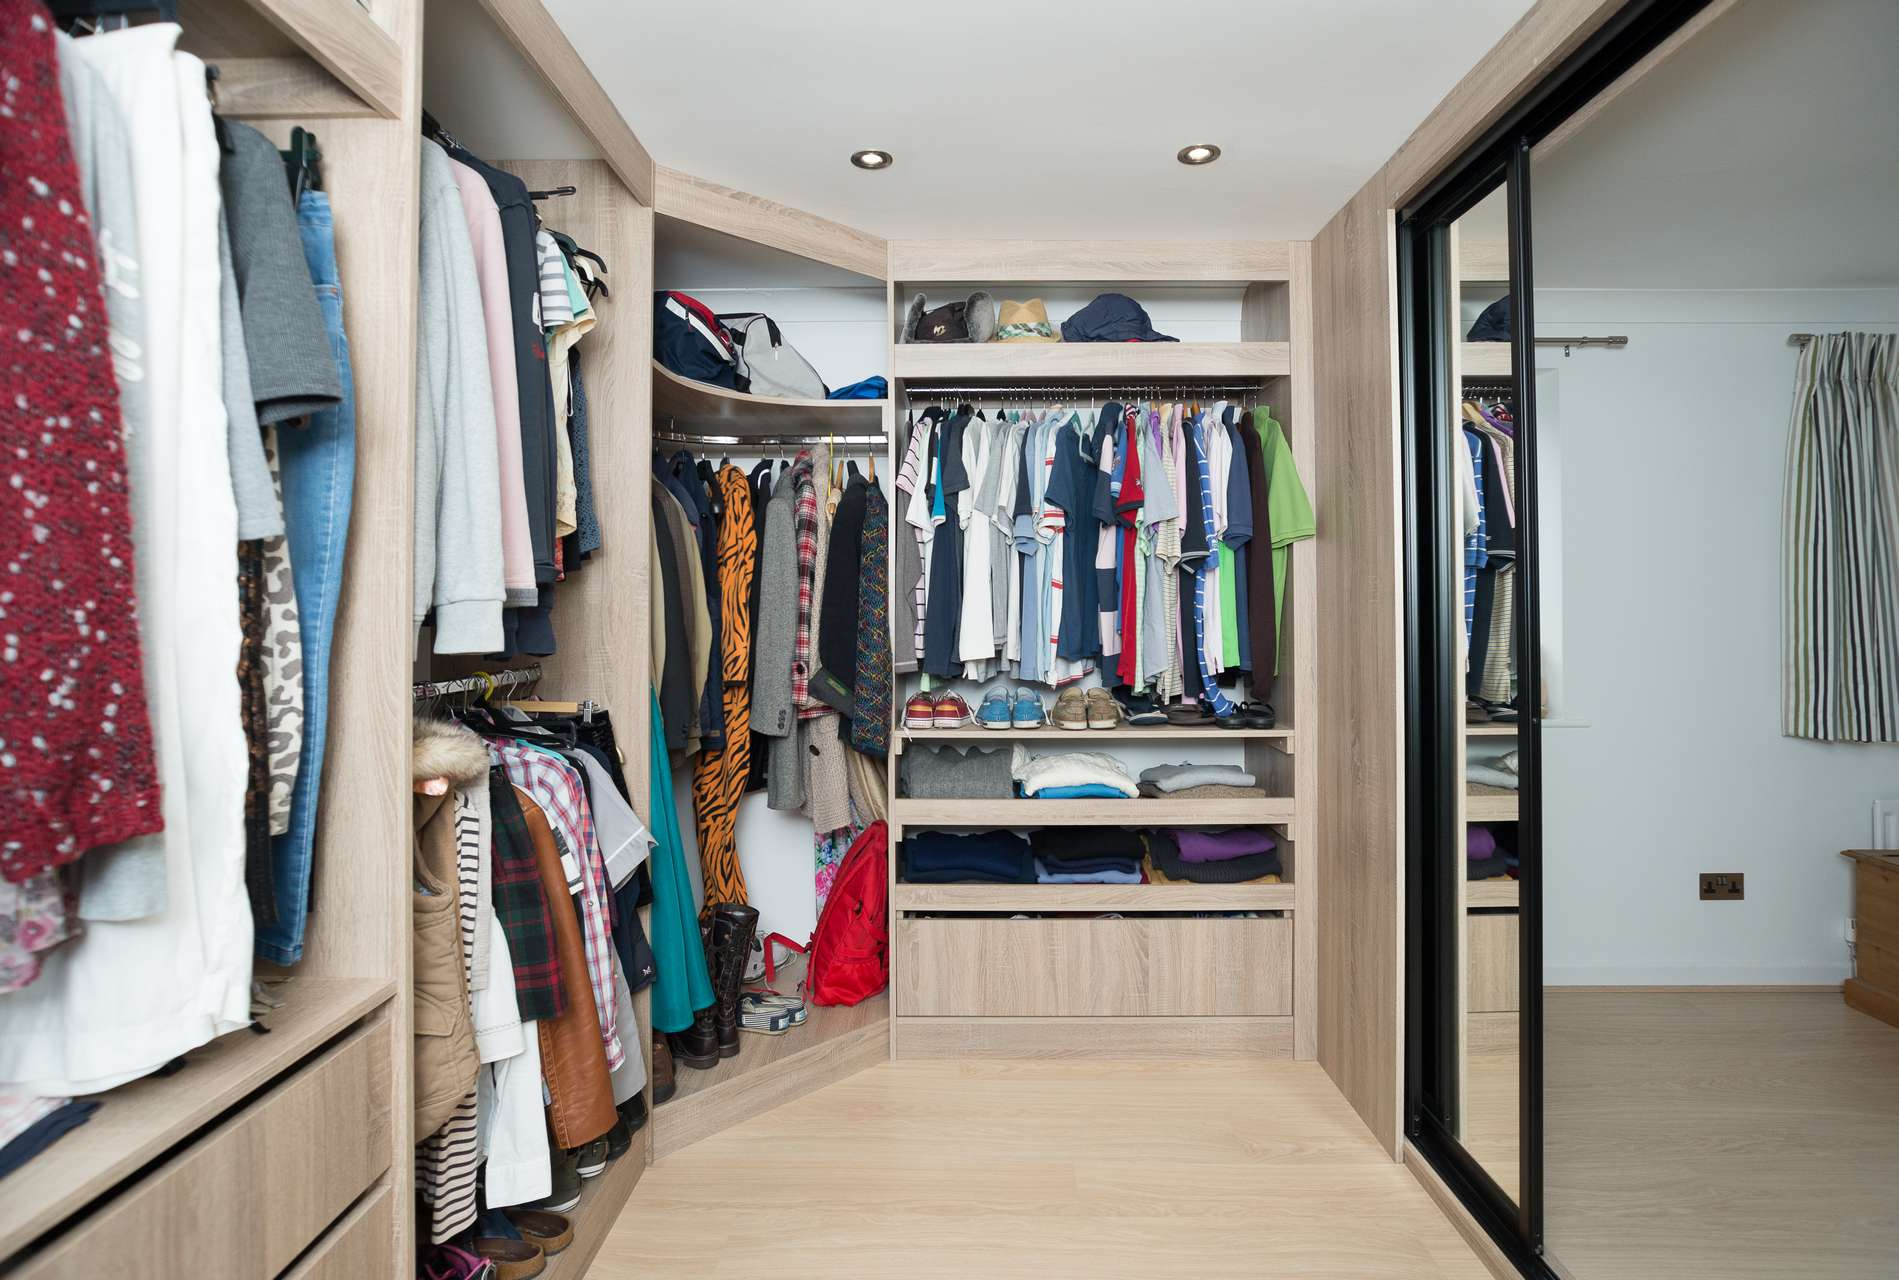 Sliding Door Walk in Wardrobe - Internal view with clothes